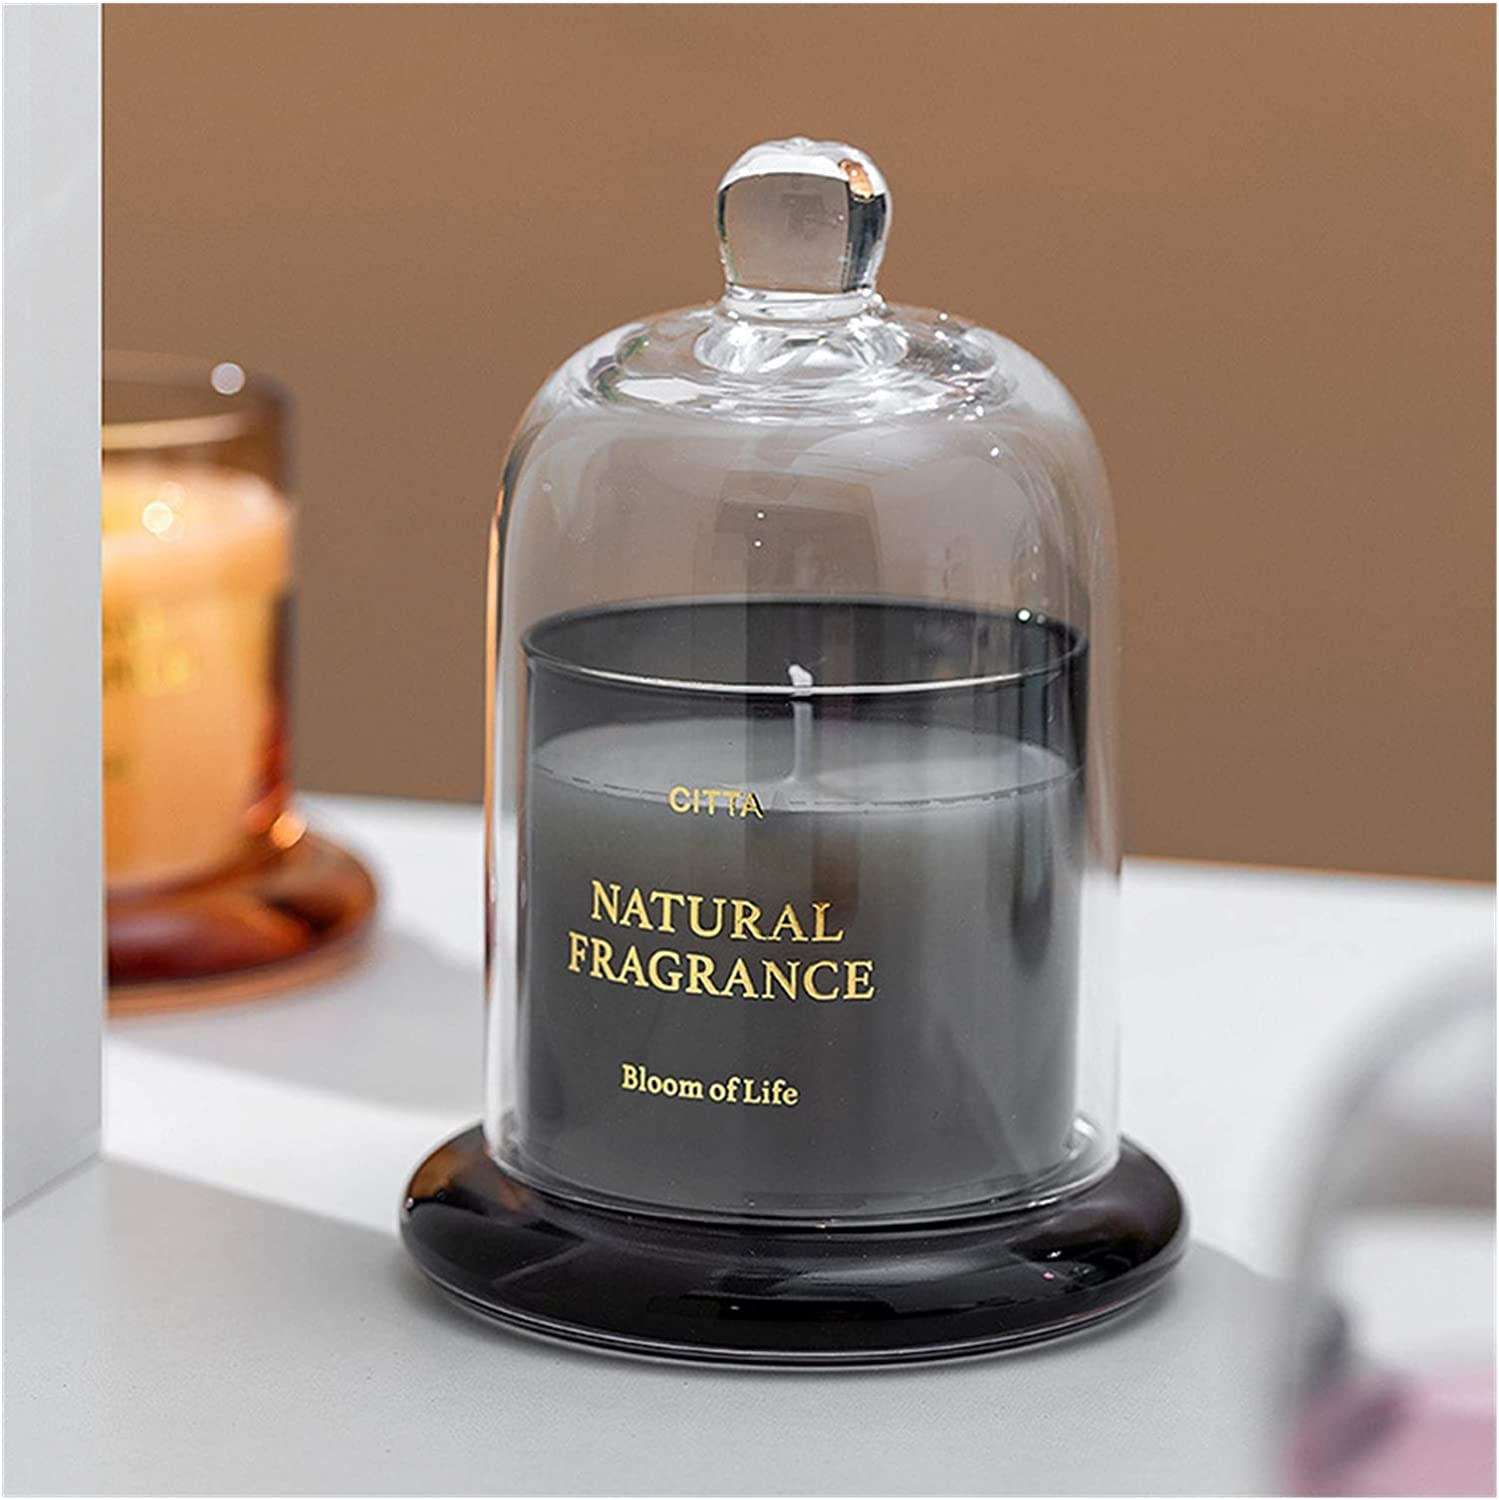 Scented Candles Max Max 74% OFF 42% OFF 1PC High-End Smokeless Candle Glass Aromatherapy